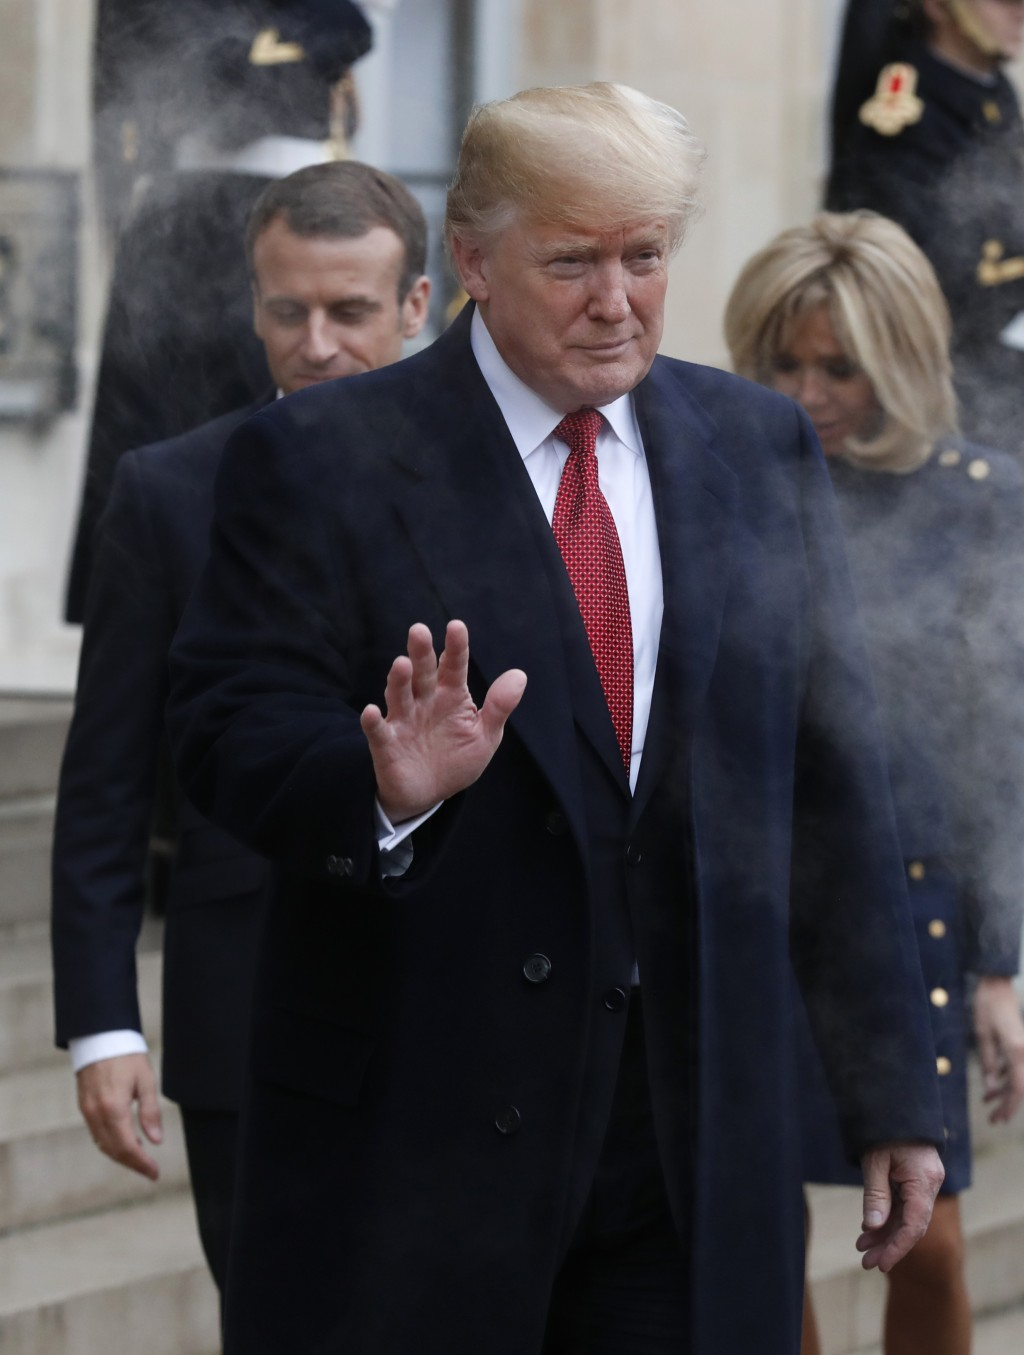 U.S President Donald Trump, followed by French President Emmanuel Macron, left, and his wife Brigitte, right, gestures outside the Elysee Palace after